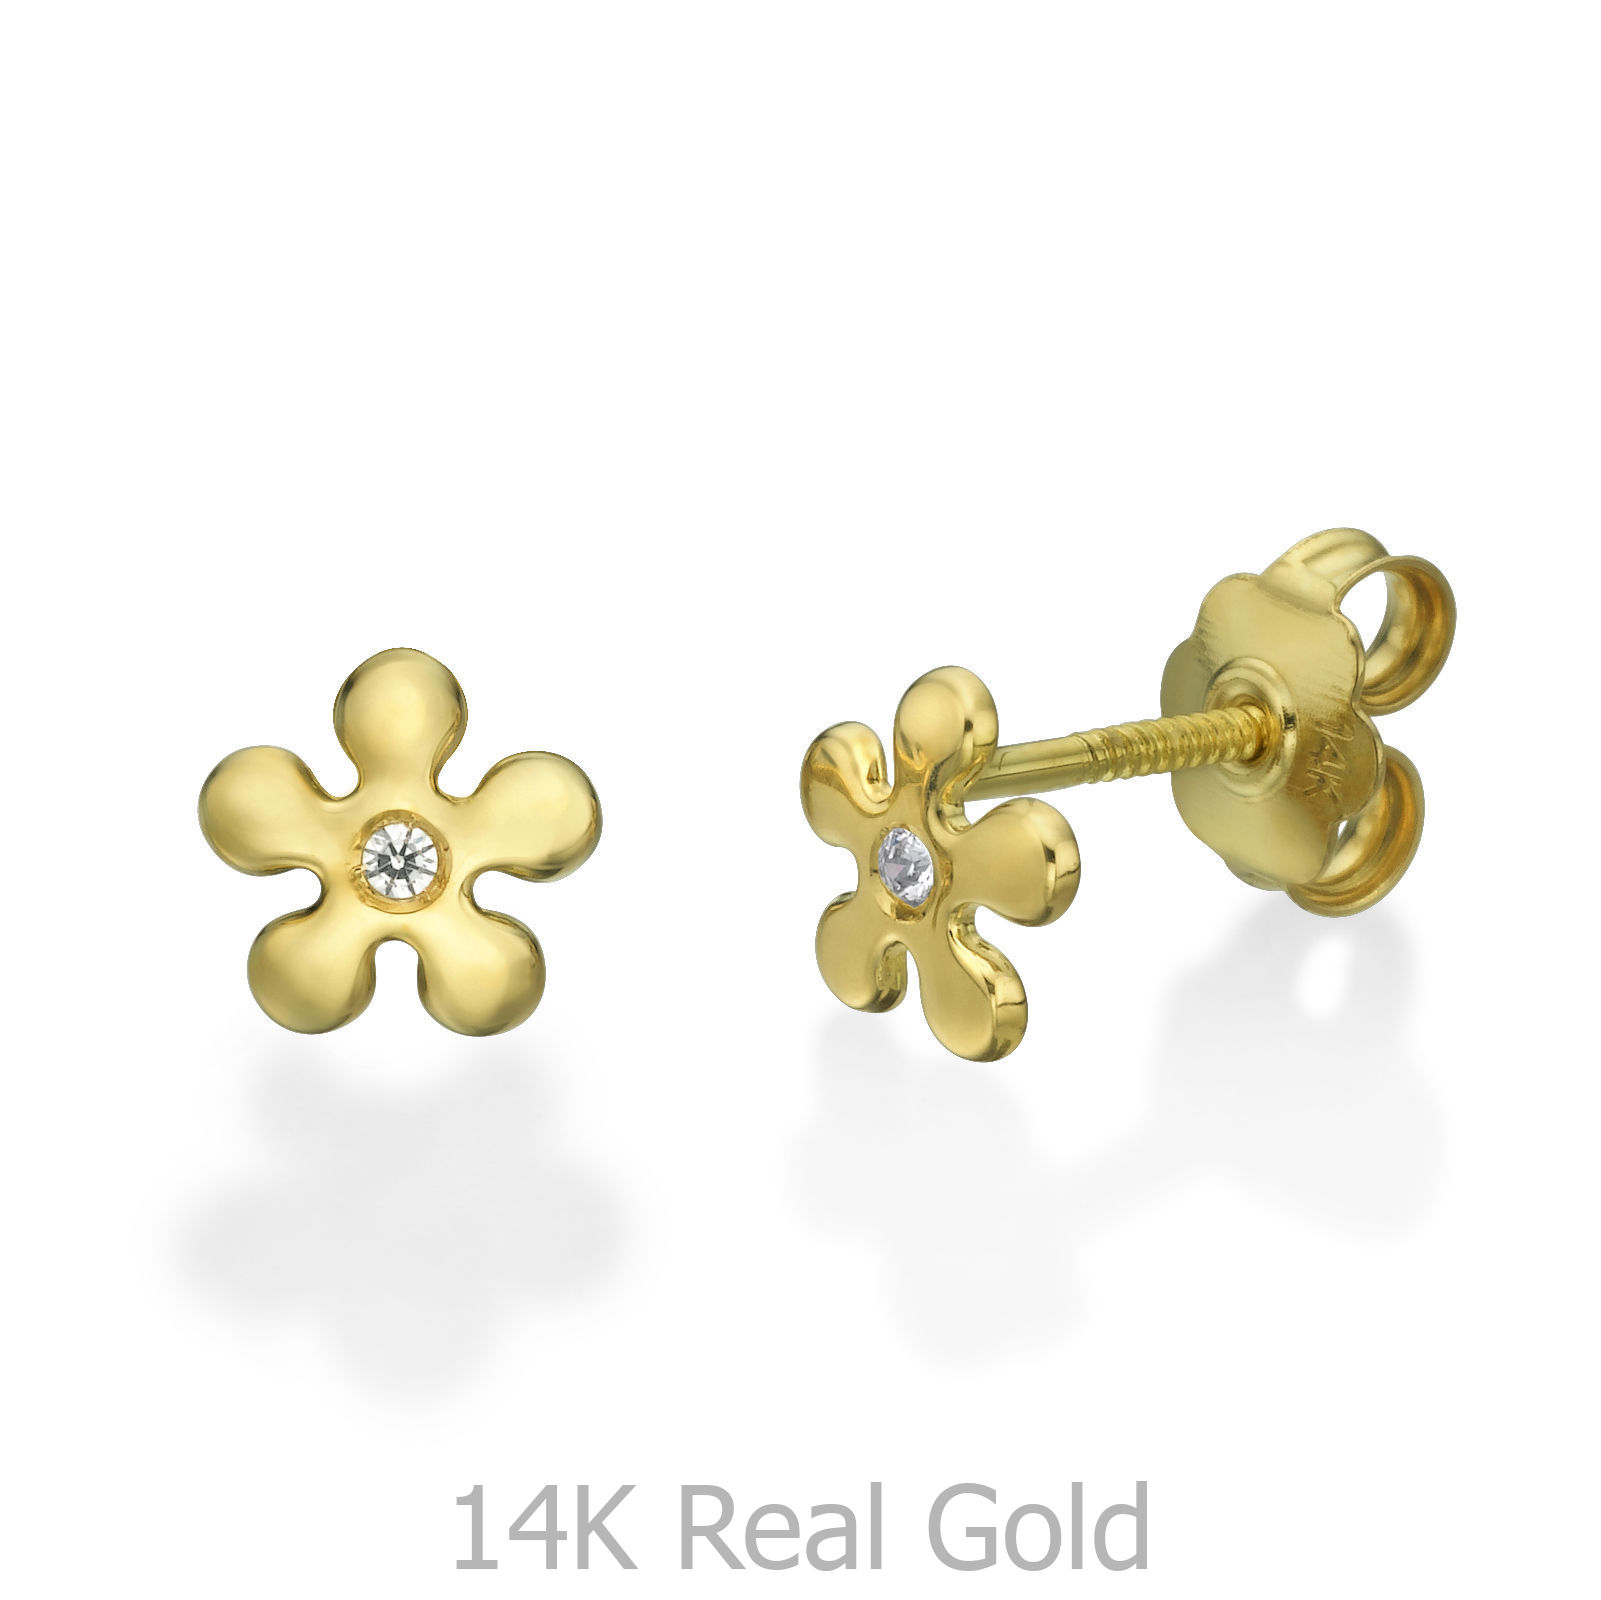 Details About 14k Solid Gold Cubic Zirconia Stud Earrings Flowers Delicate Children Studs Baby